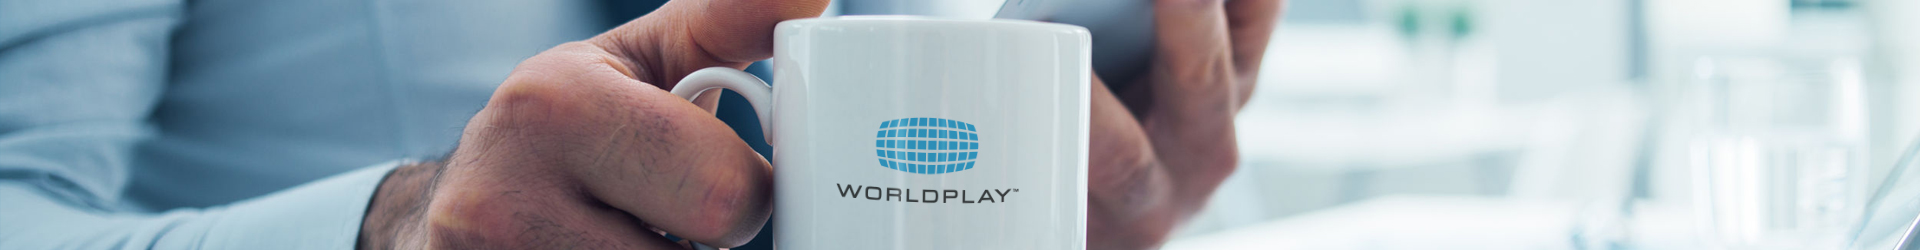 About Worldplay